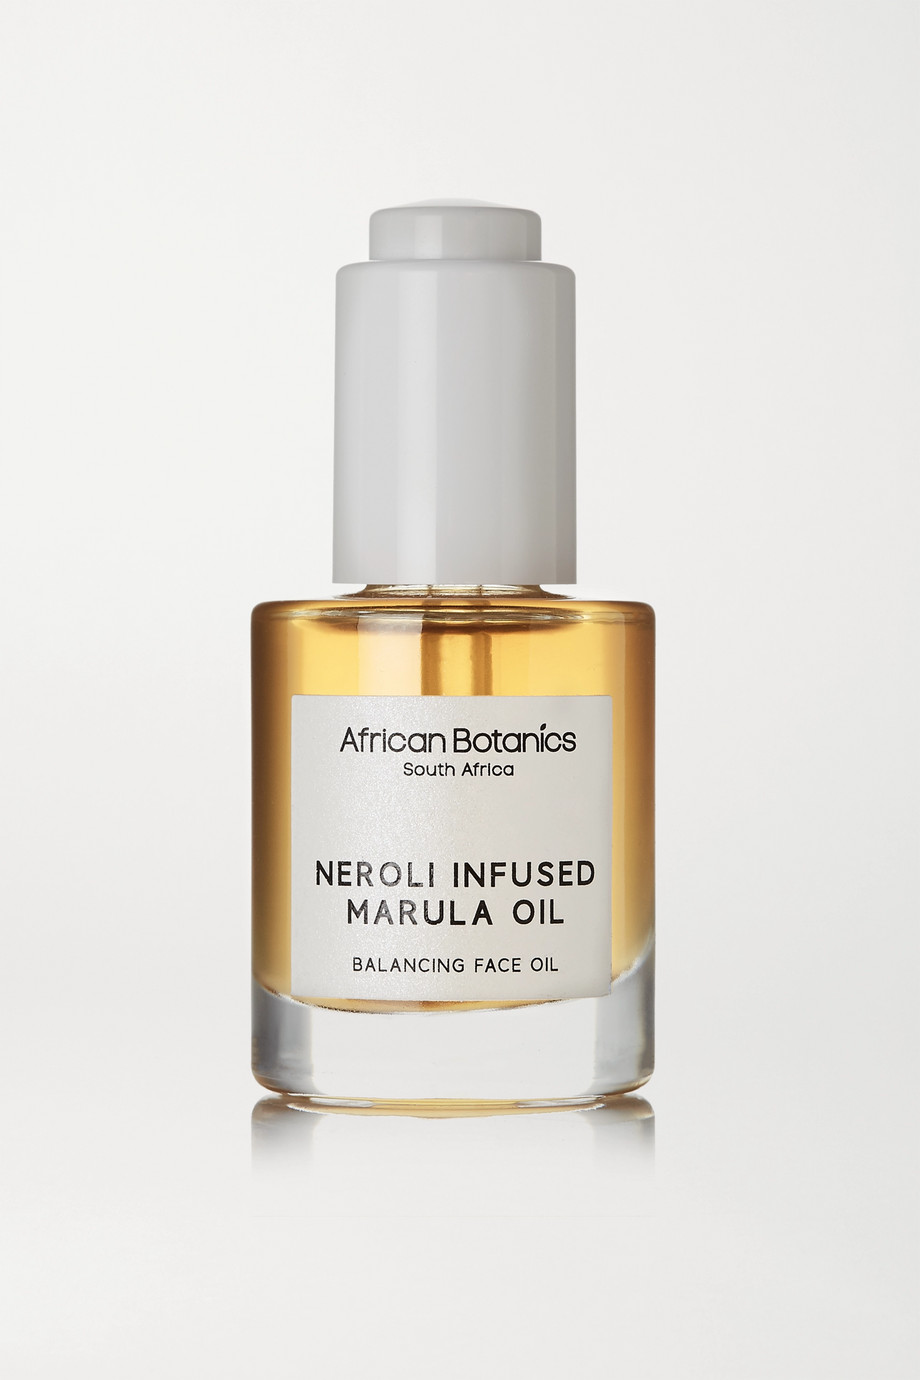 African Botanics Neroli Infused Marula Oil - Balancing Face Oil, 30ml